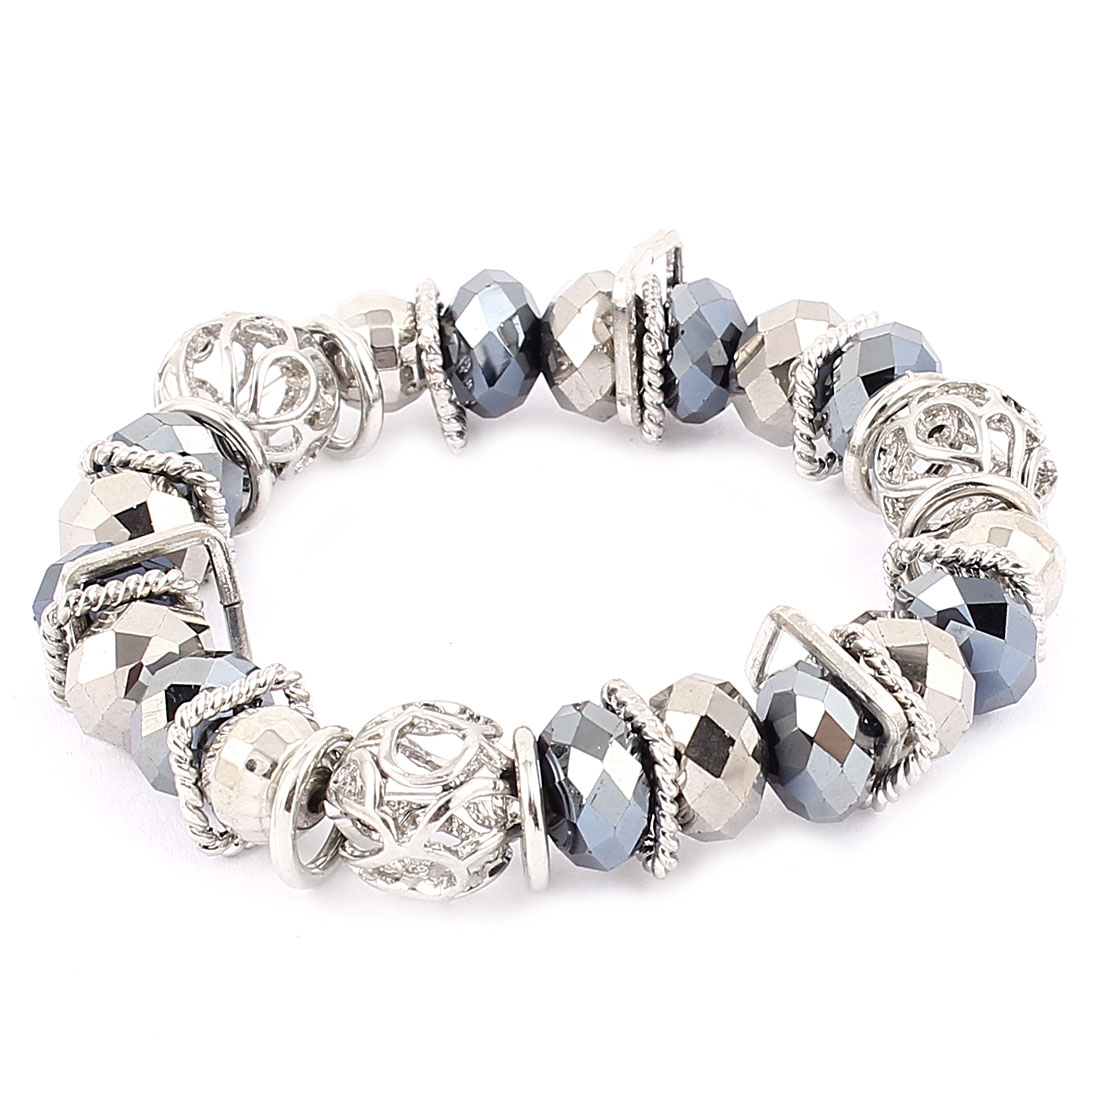 Silver Tone Yale Blue Plastic Rhinestone Fashion Charming Ornament Elastic Band Wrist Decor Bracelet Bangle for Lady Women Men